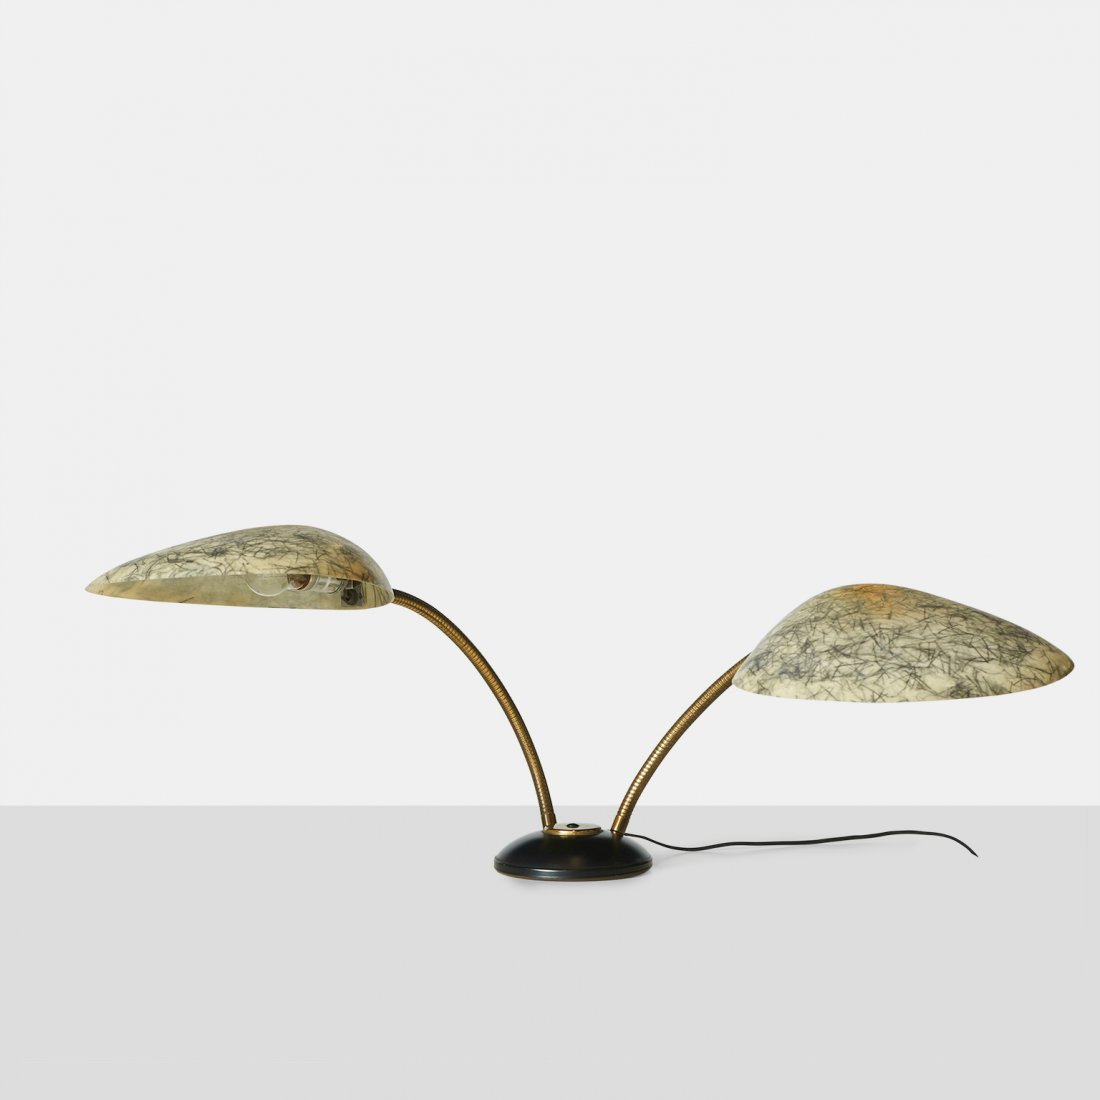 Greta Grossman, Cobra Table Lamp